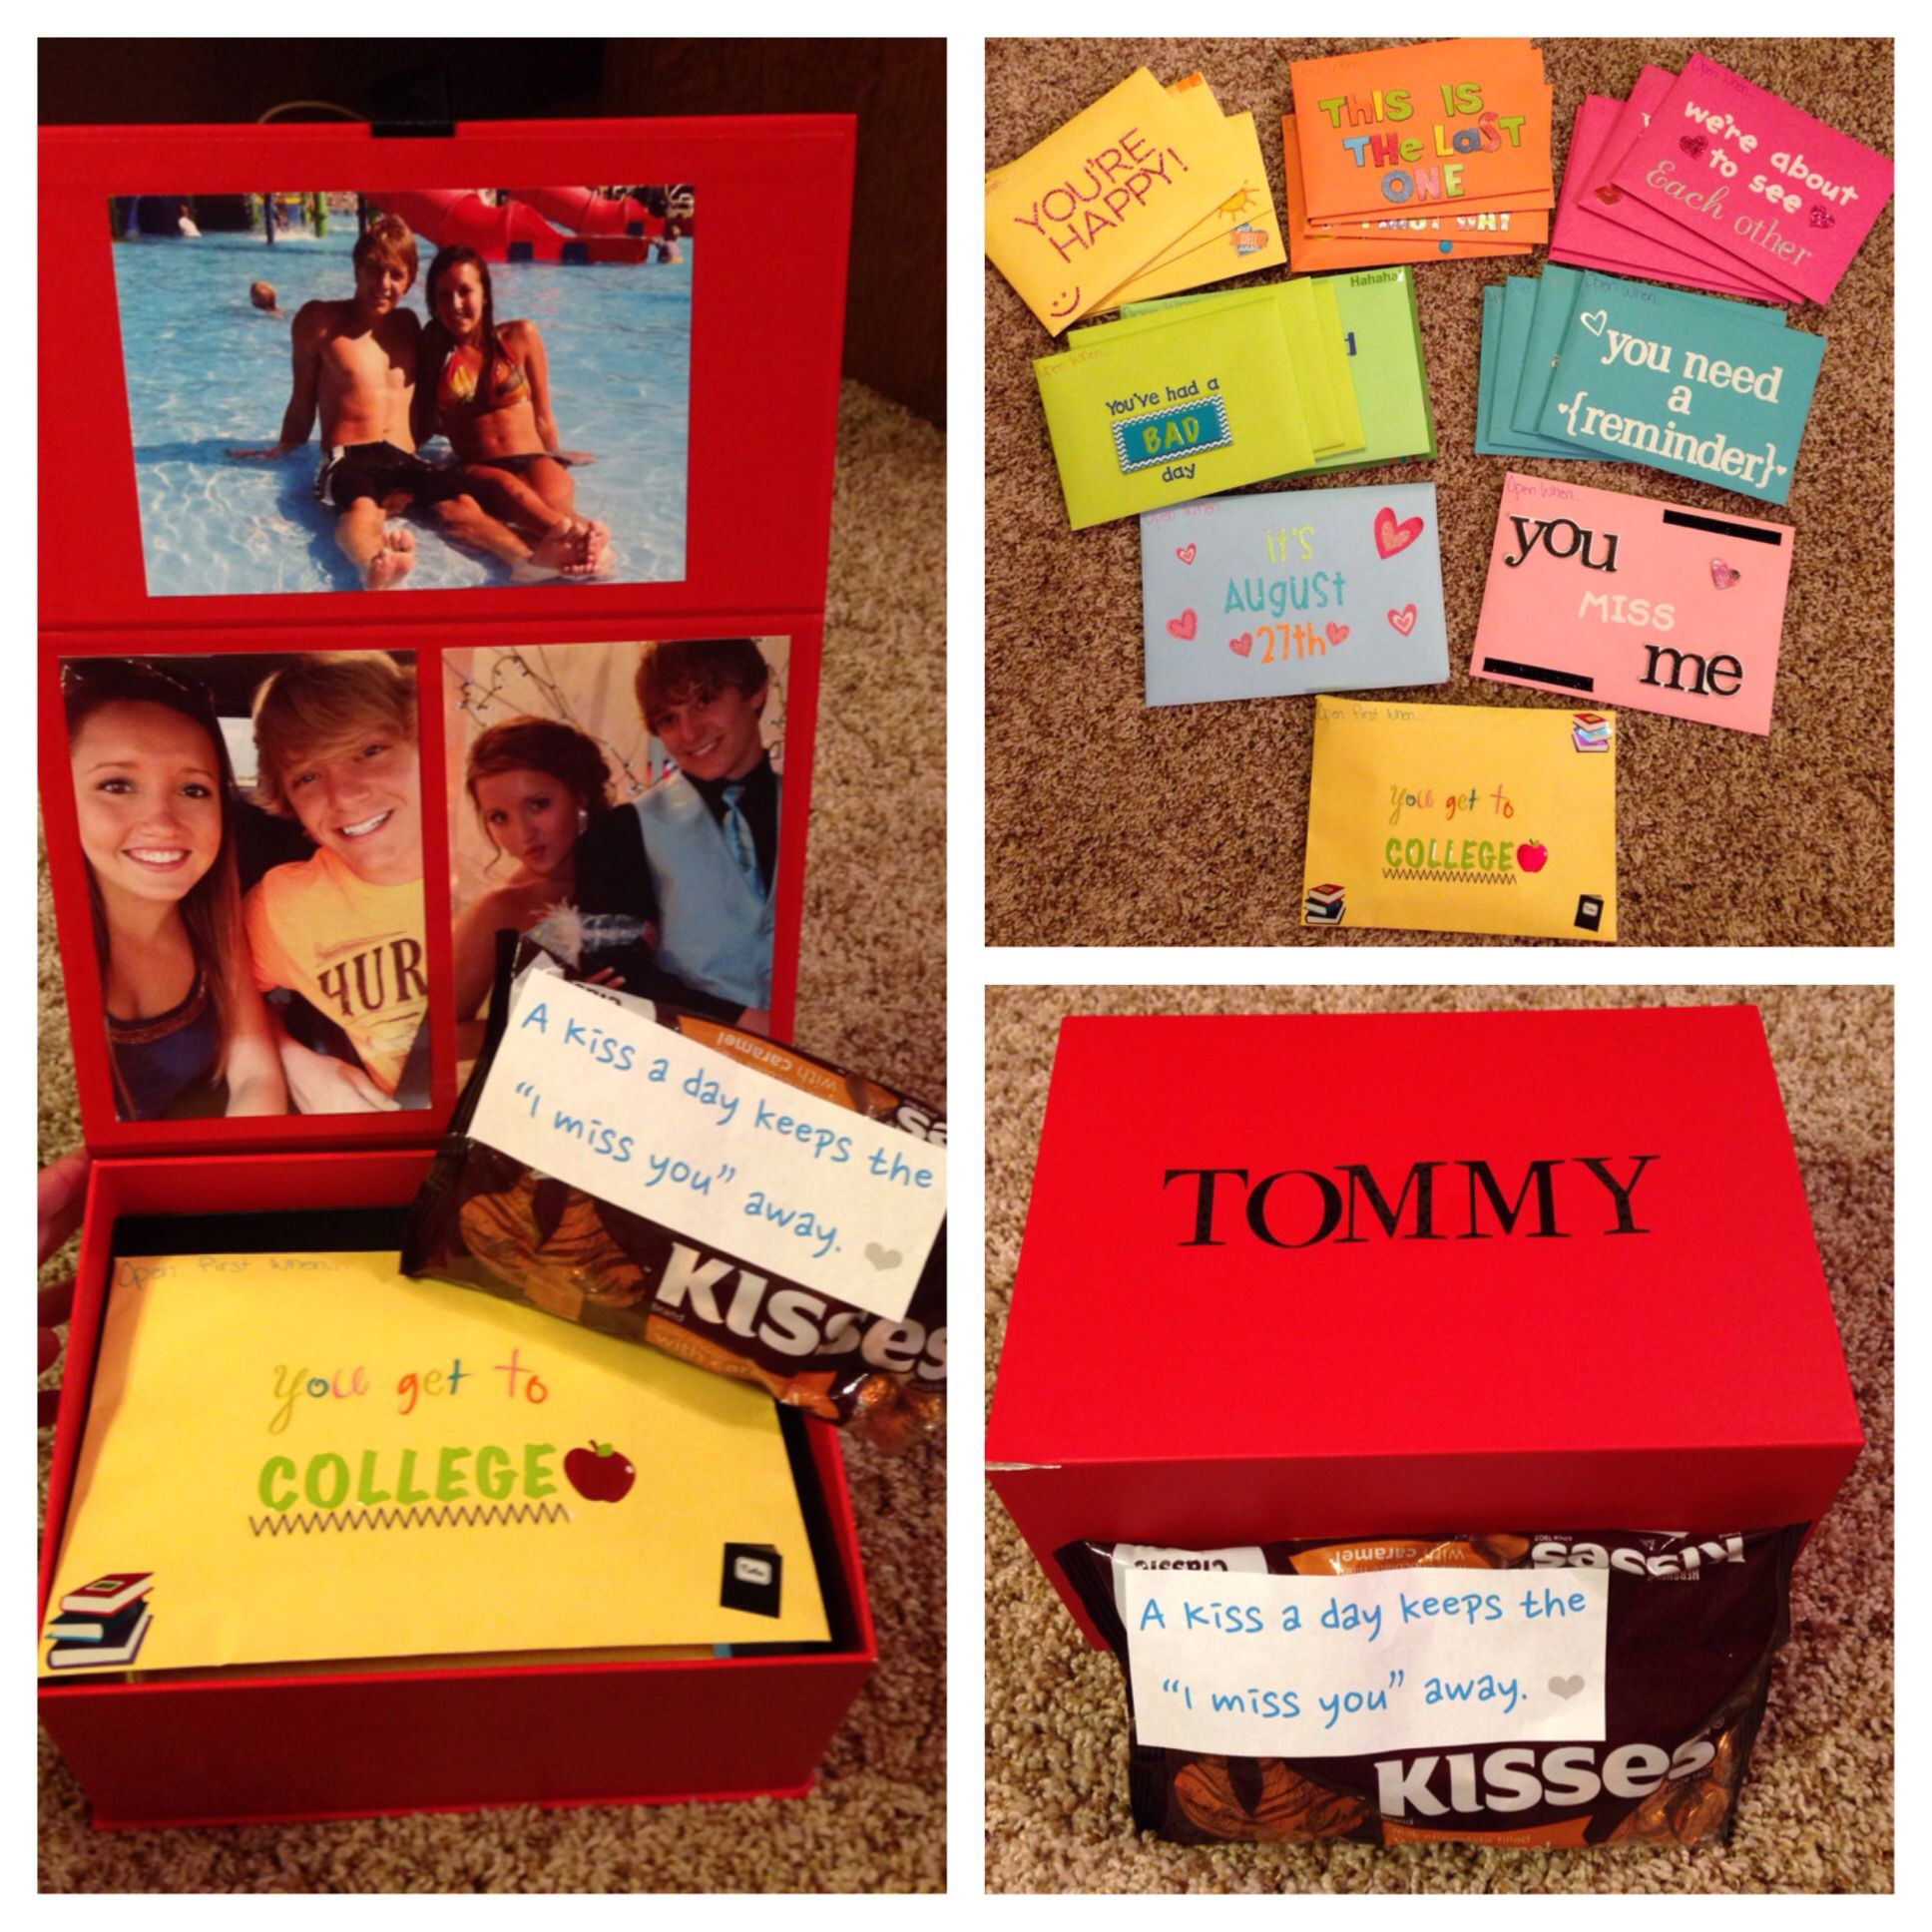 College Going Away Gift For My Boyfriend Open When Letters And Kisses Gift Ideas